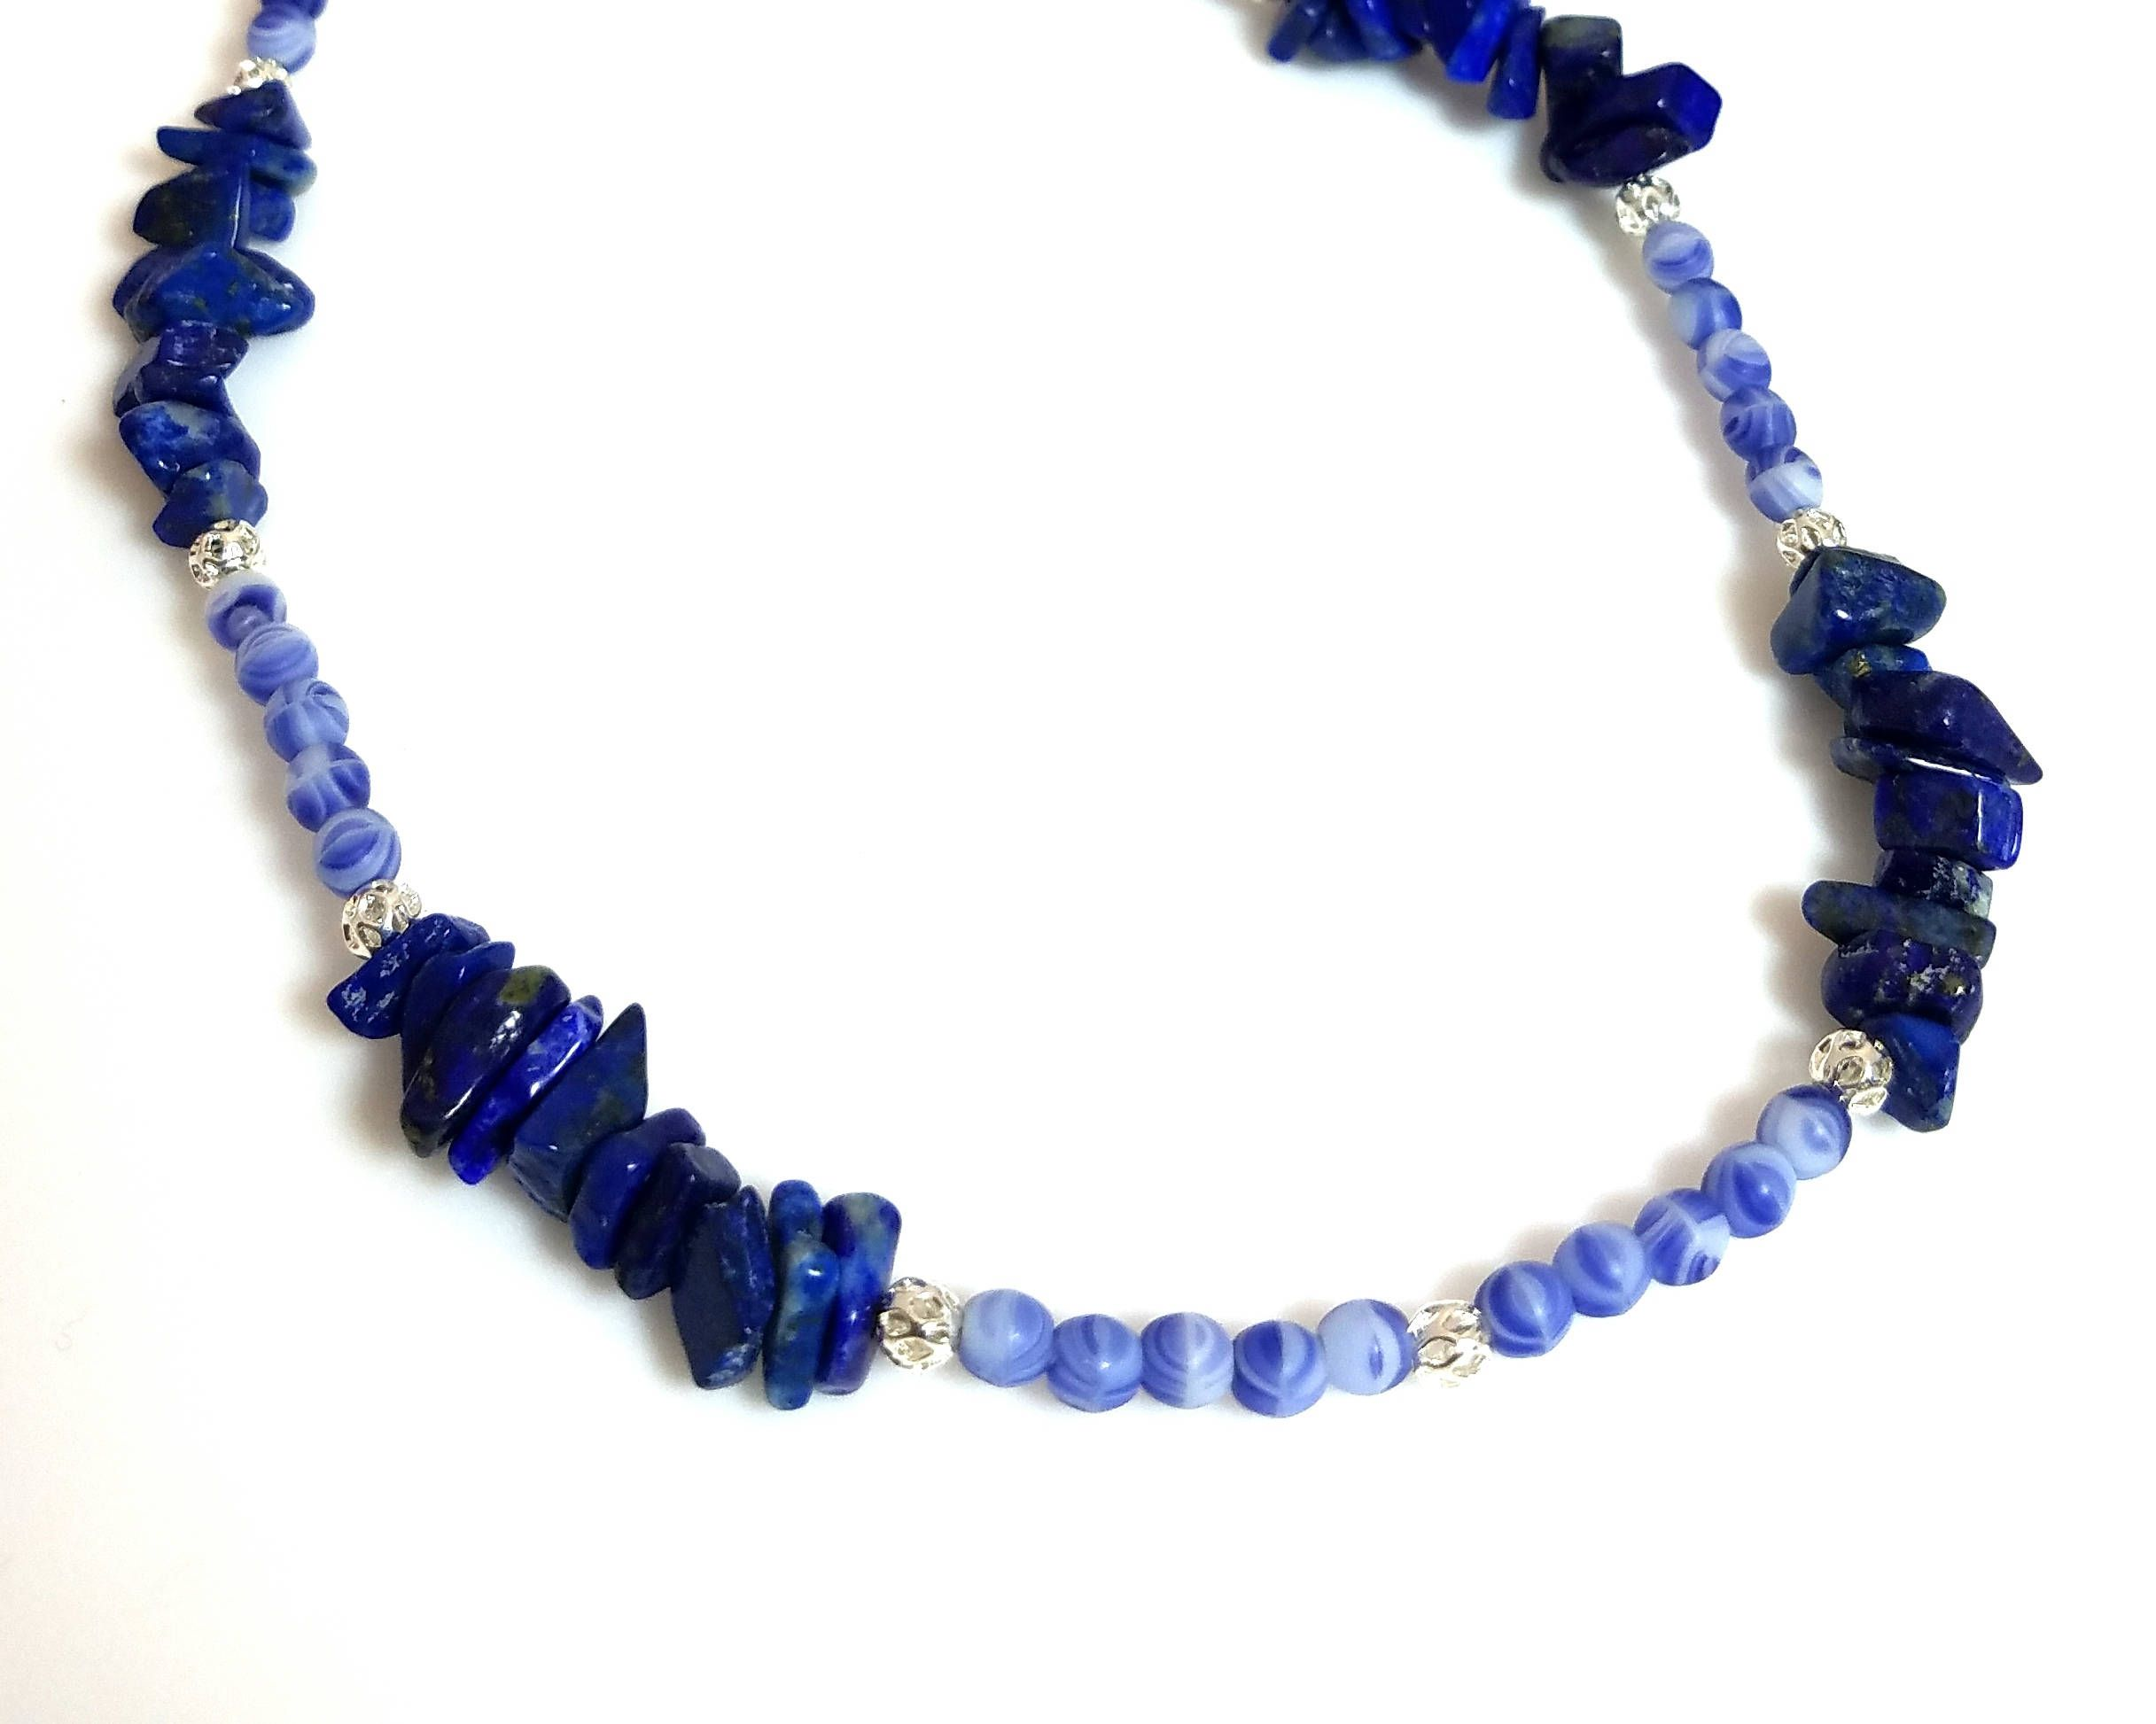 bracelet heart of p necklace brighton picture blue s crystal sacred beaded ebay bead